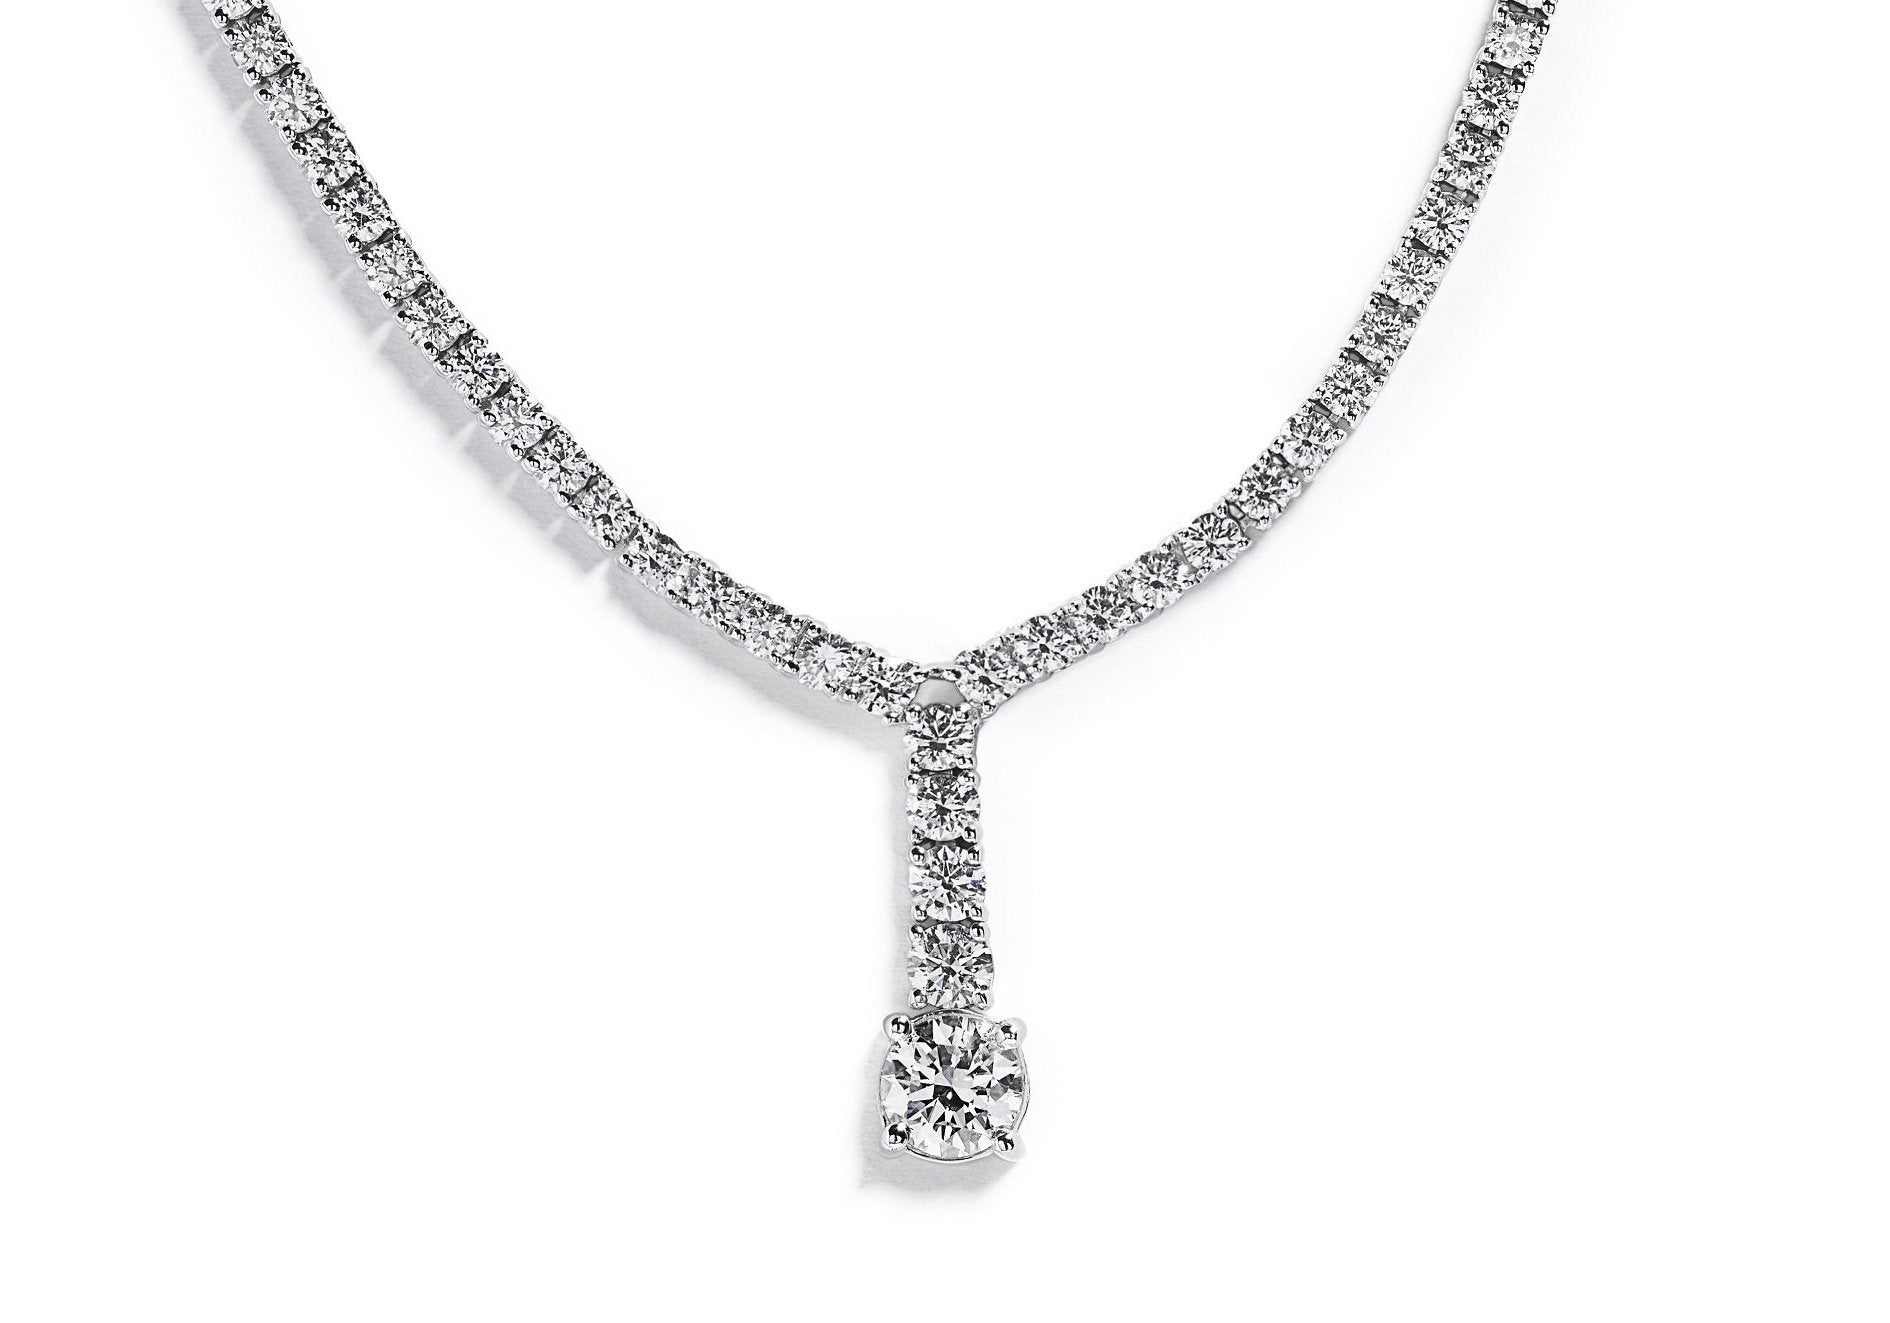 Diamantcollier med 4,55 ct. diamanter